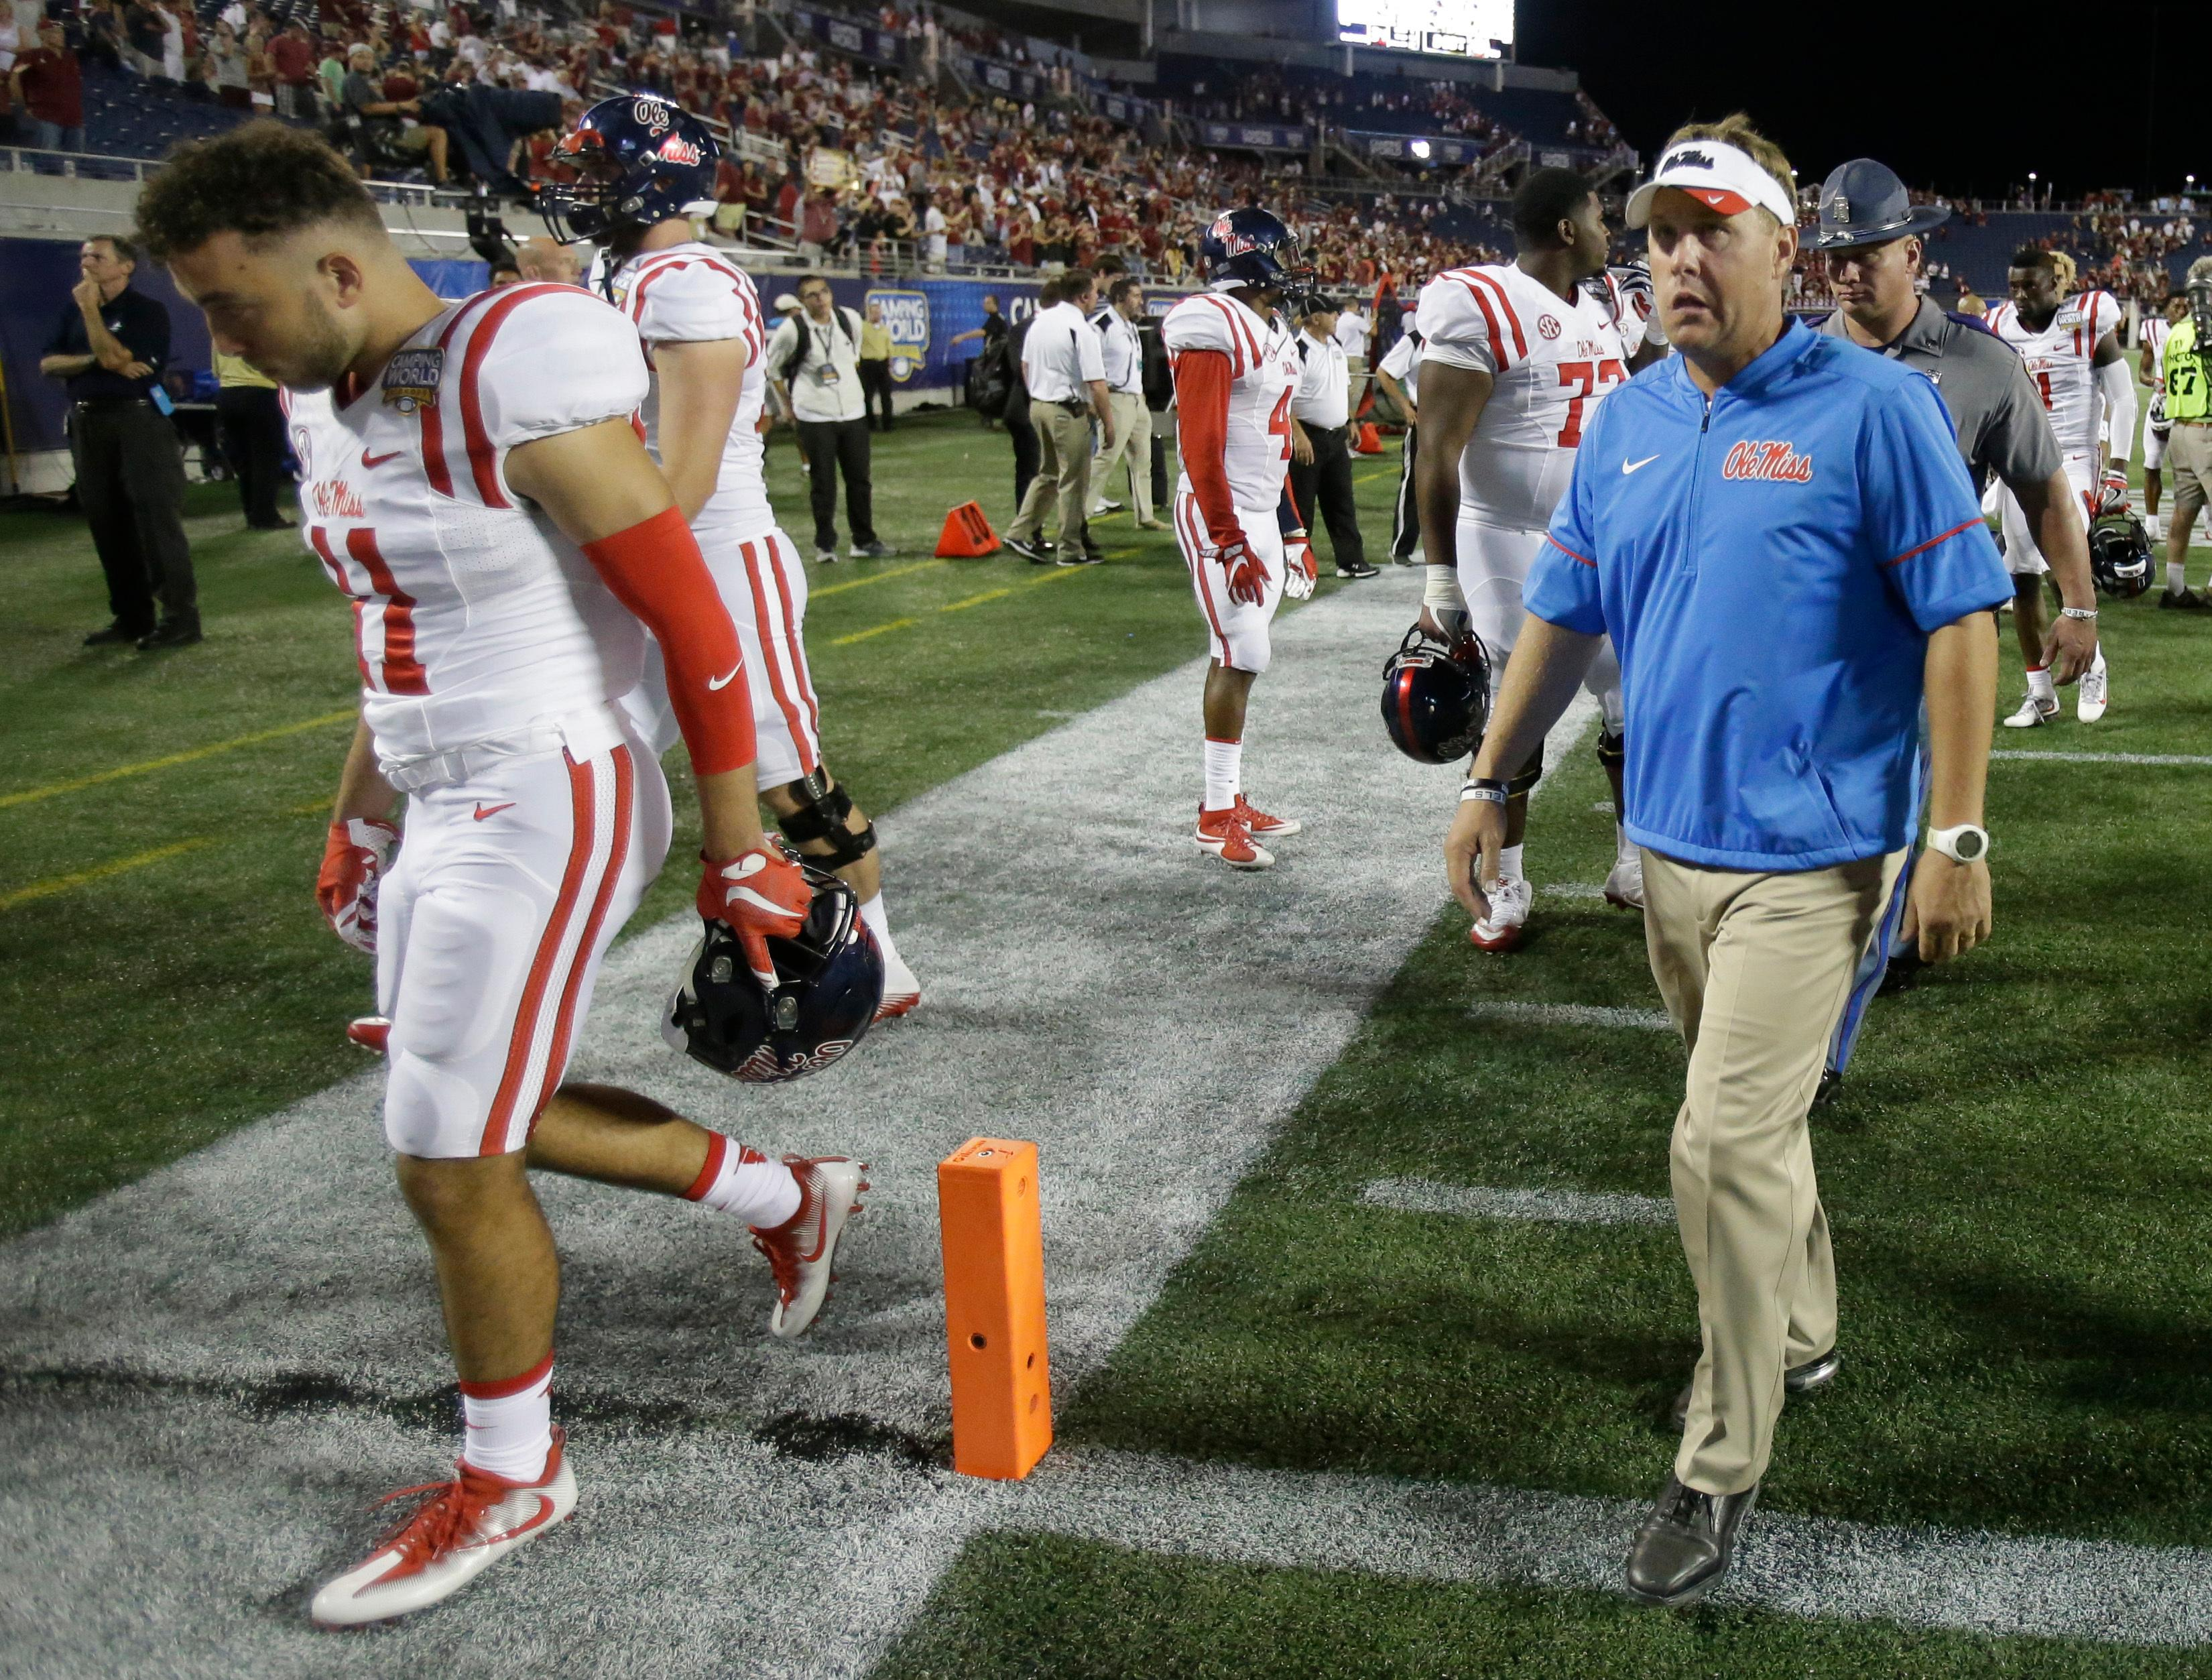 FILE - In this Sept. 5, 2016, file photo, Mississippi coach Hugh Freeze, right, leaves the field with players after their 45-34 loss to Florida State in an NCAA college football game in Orlando, Fla. Freeze has resigned after five seasons, bringing a stunning end to a once-promising tenure.                  The school confirmed Freeze's resignation in a release Thursday night. Assistant Matt Luke has been named the interim coach. (AP Photo/John Raoux, File)